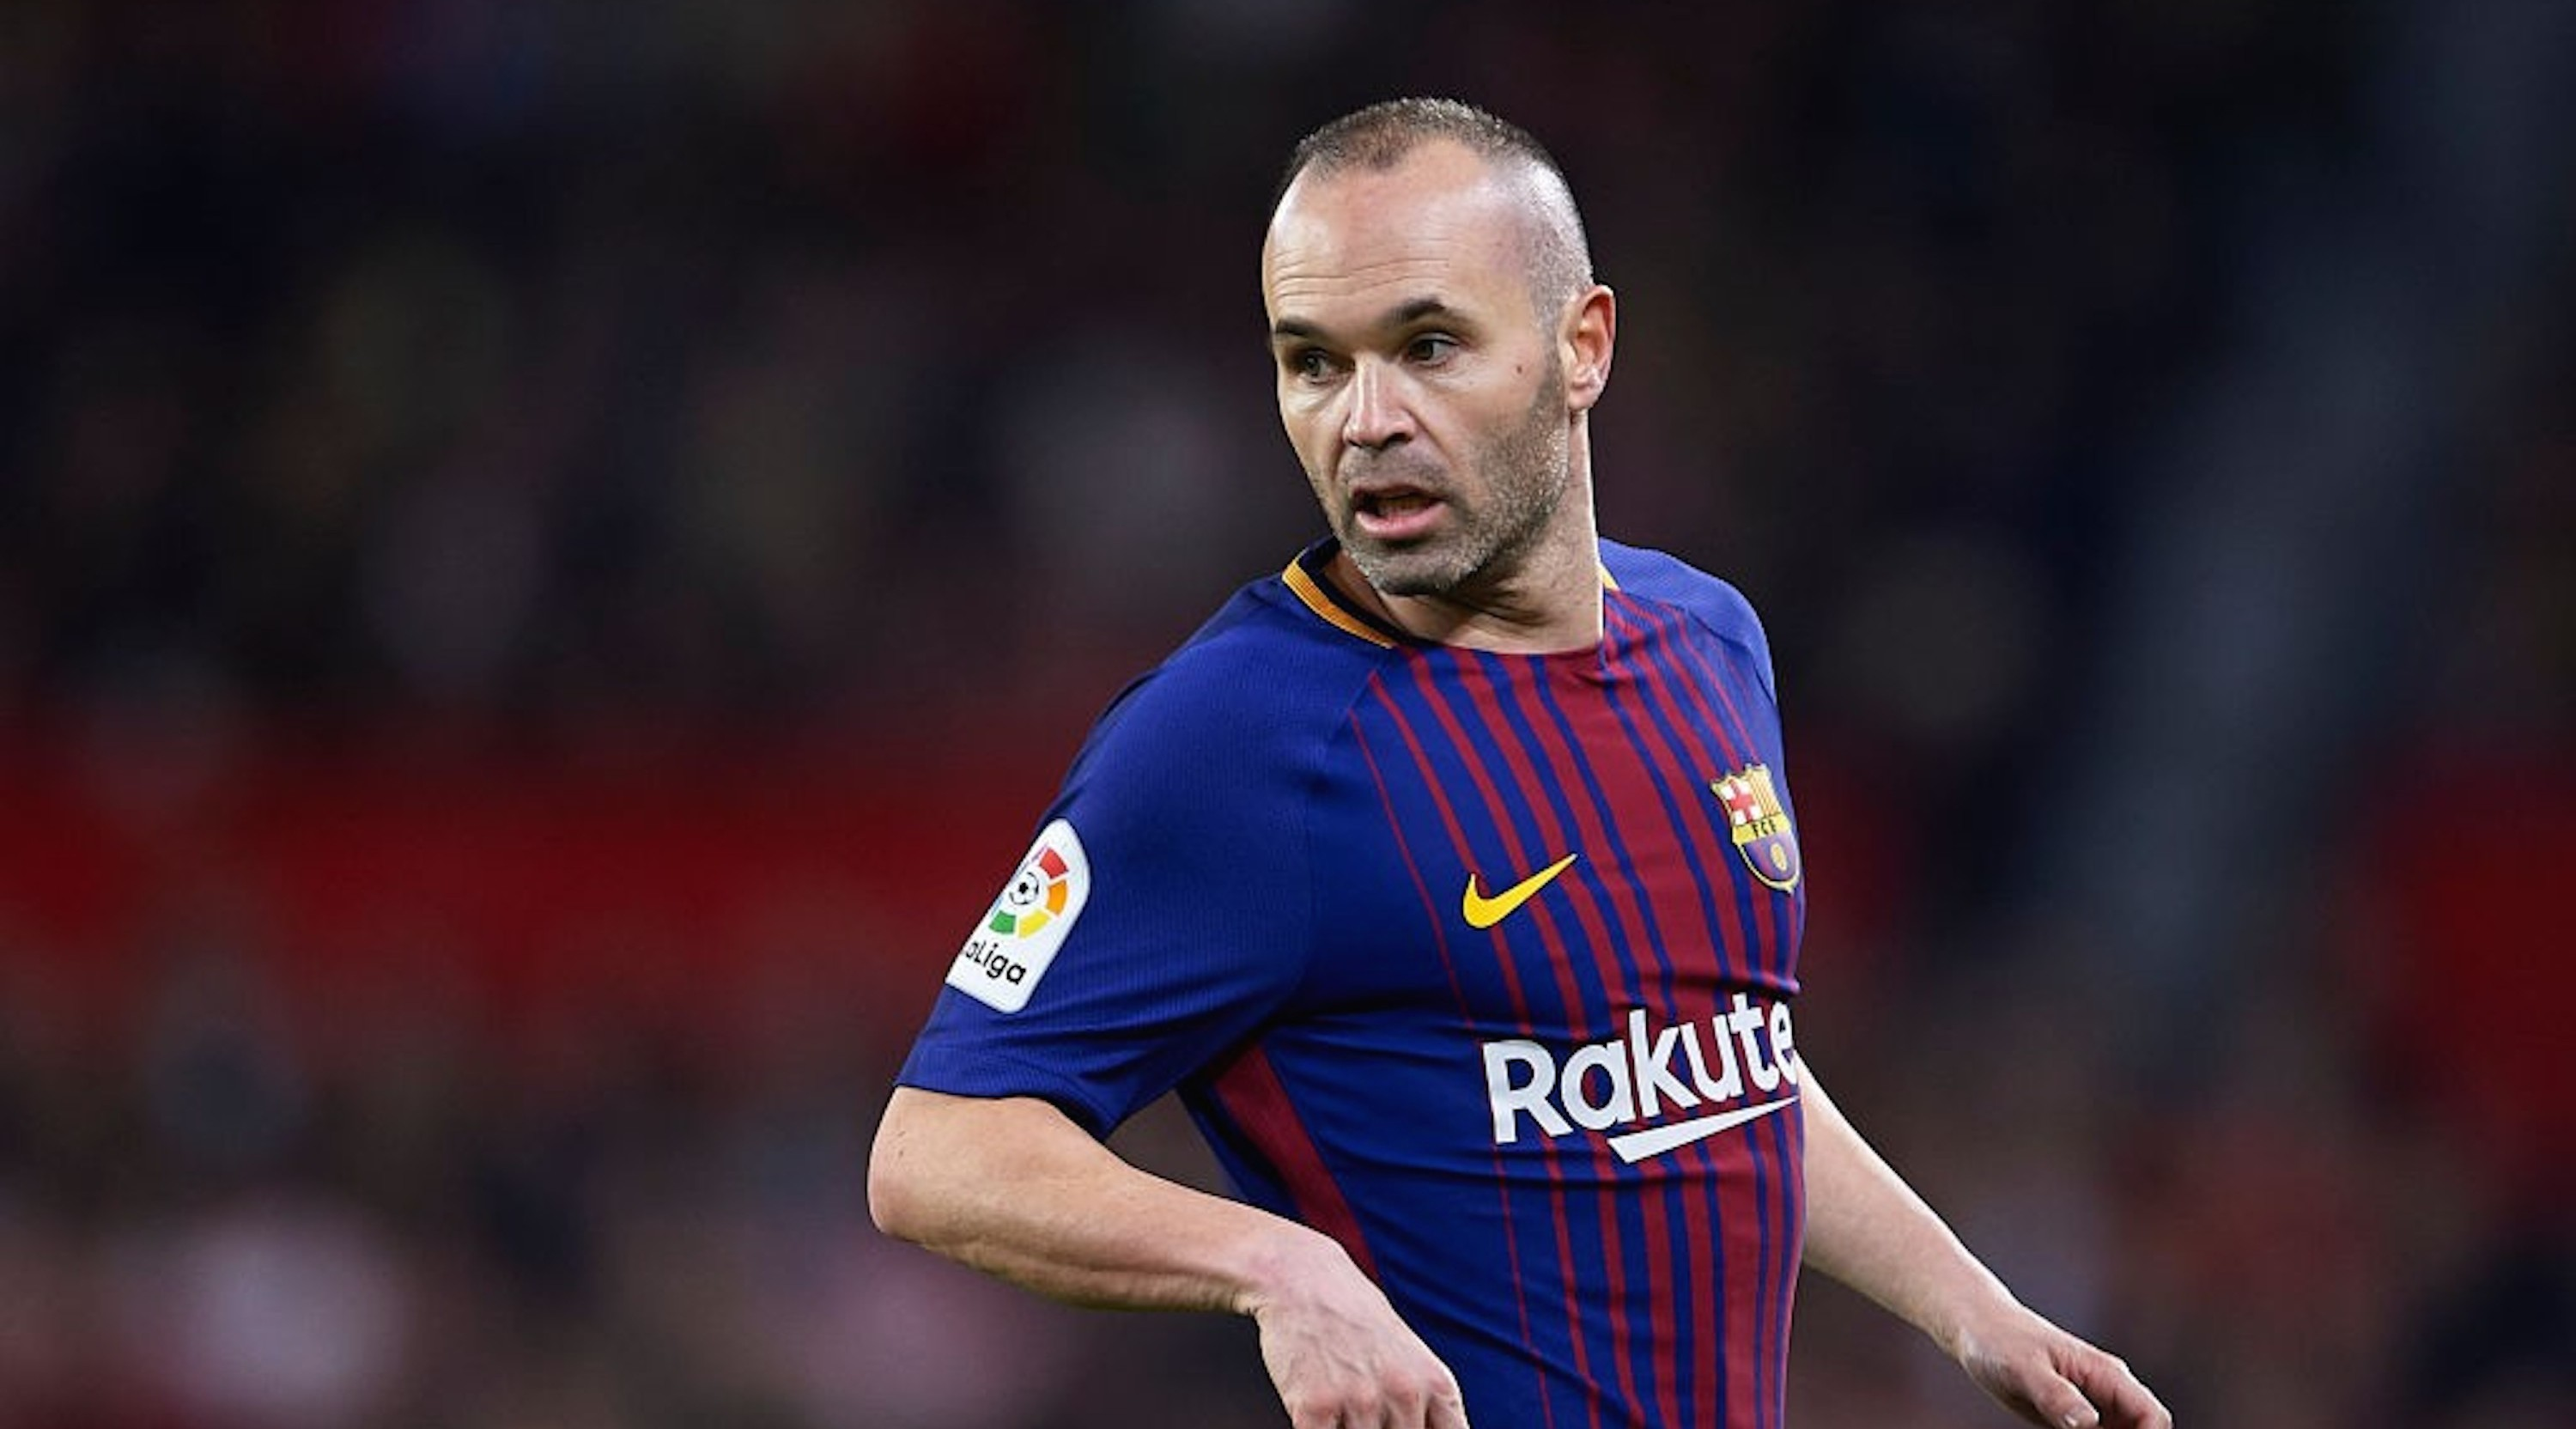 SEVILLE, SPAIN - MARCH 31: Andres Iniesta of FC Barcelona looks on during the La Liga match between Sevilla CF and FC Barcelona at Estadio Ramon Sanchez Pizjuan on March 31, 2018 in Seville, Spain. (Photo by Aitor Alcalde/Getty Images)